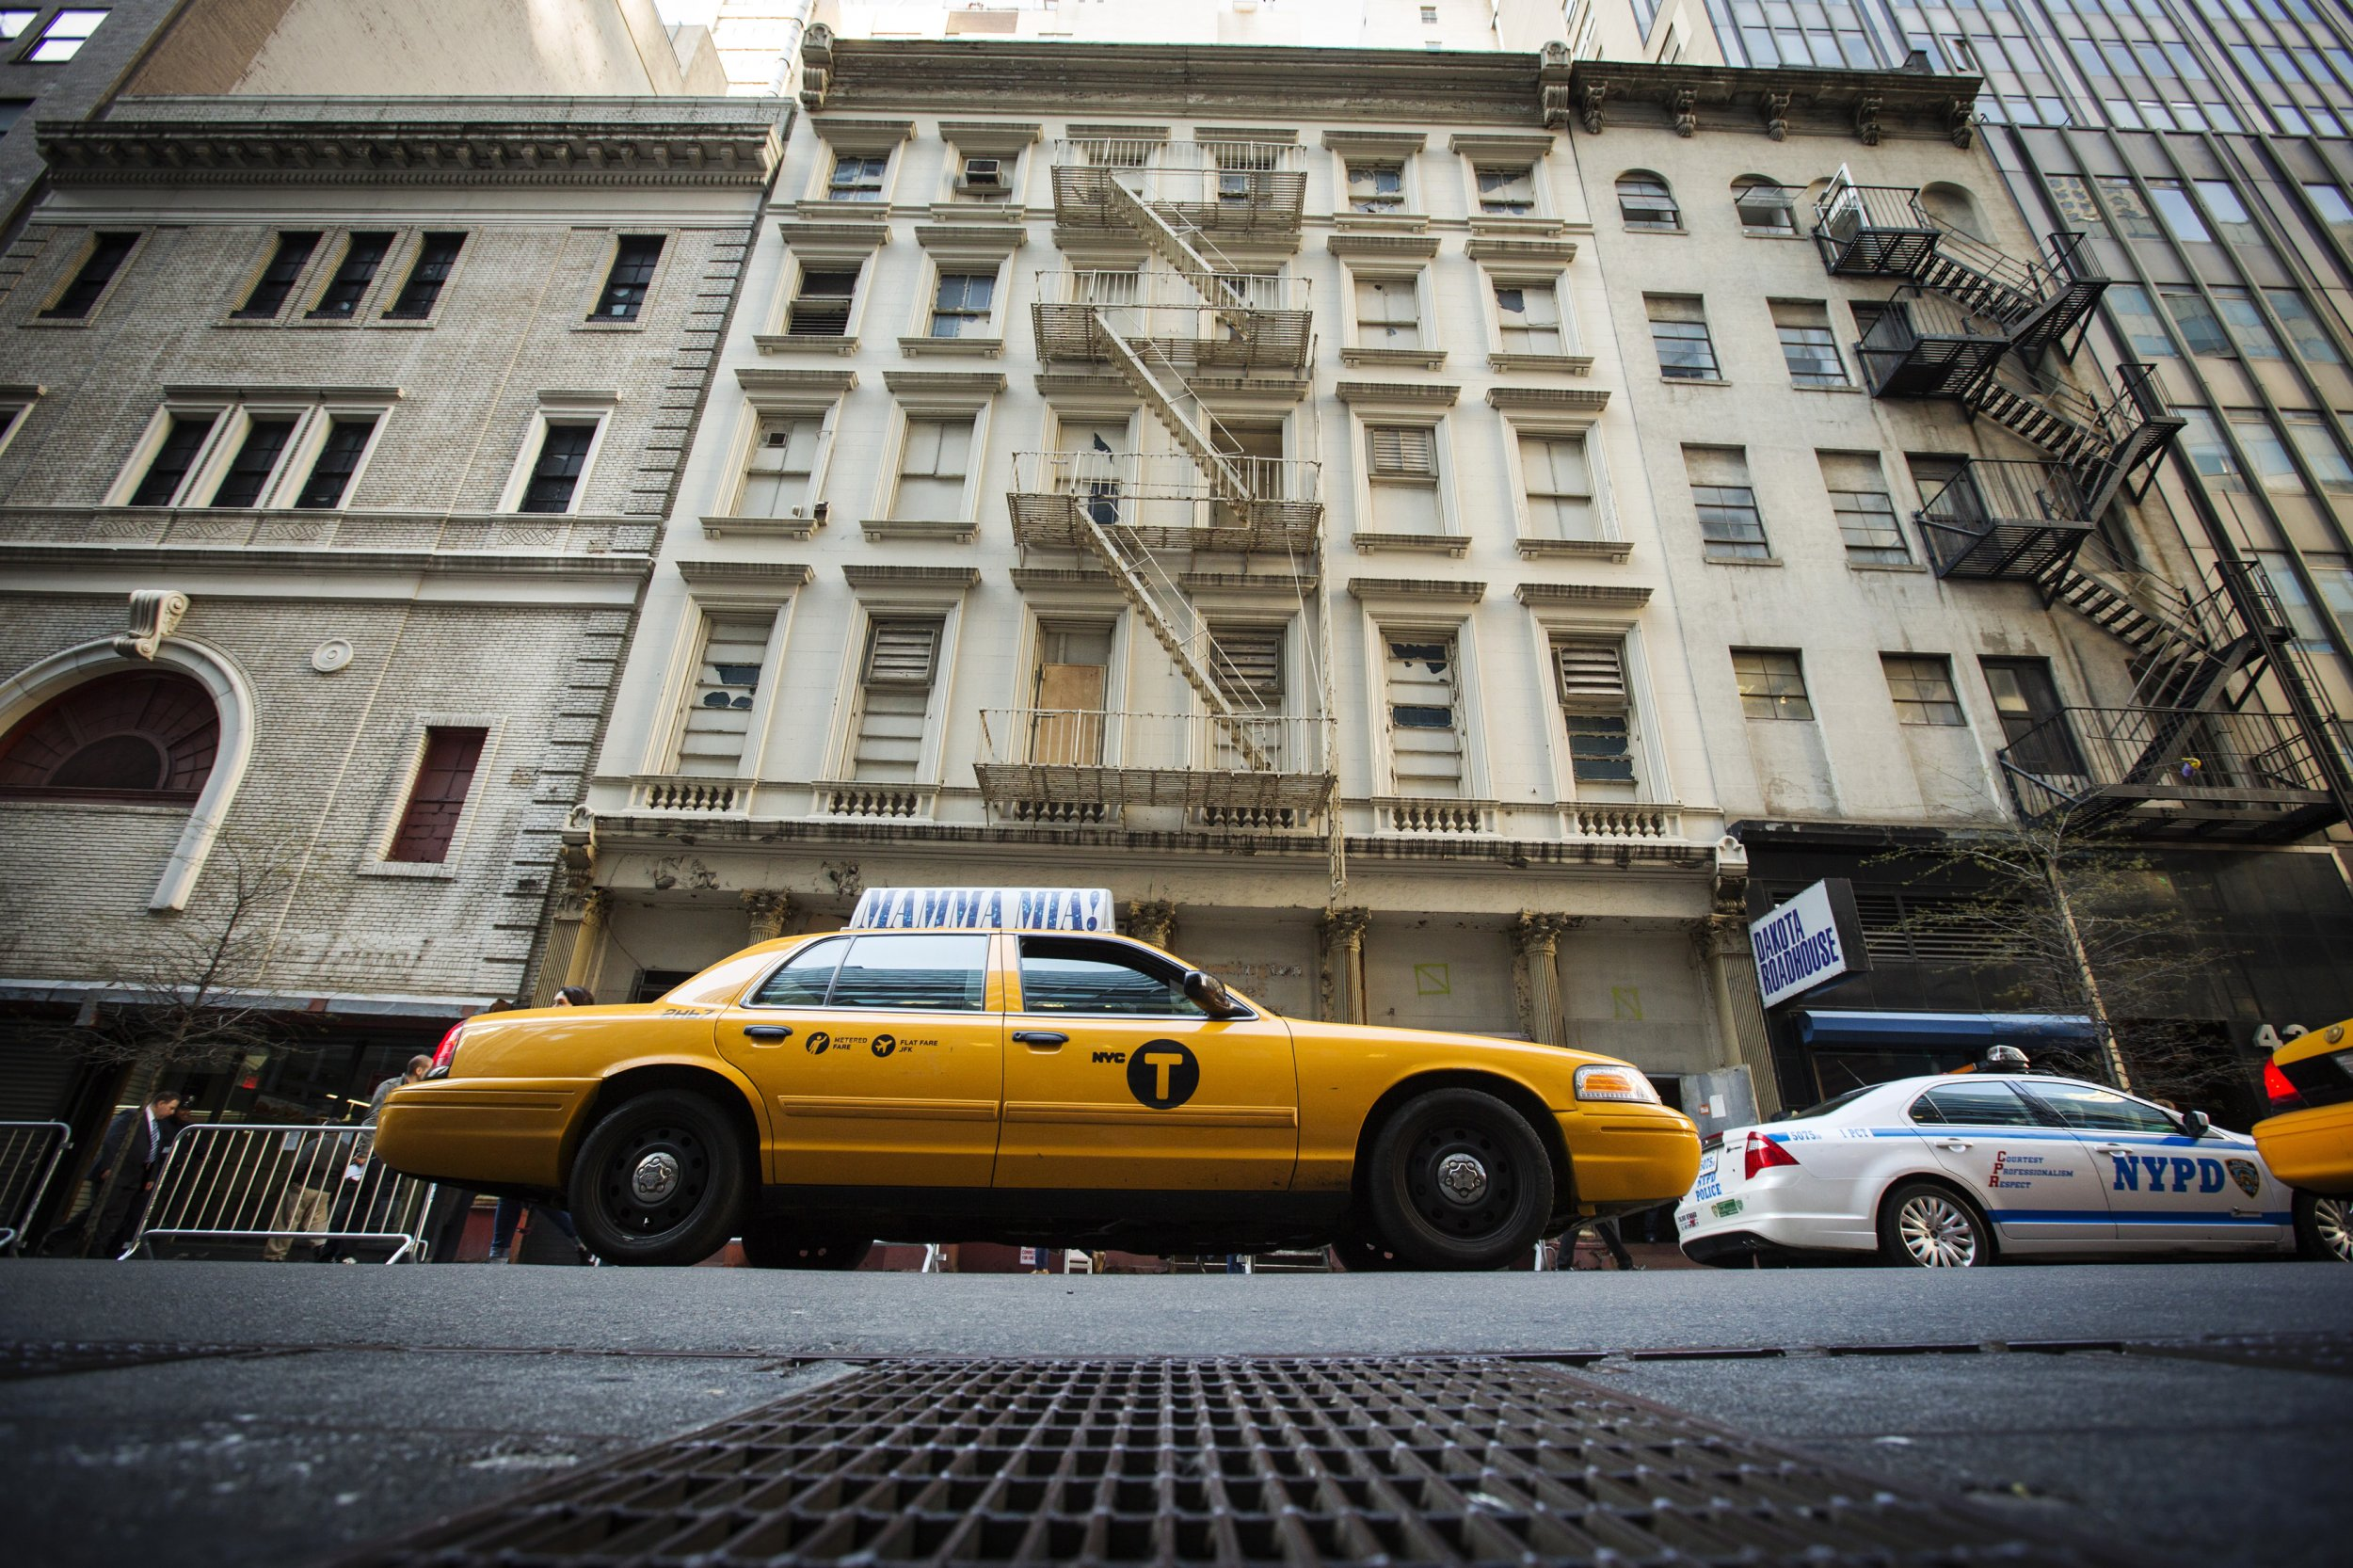 Taxi cab in New York City